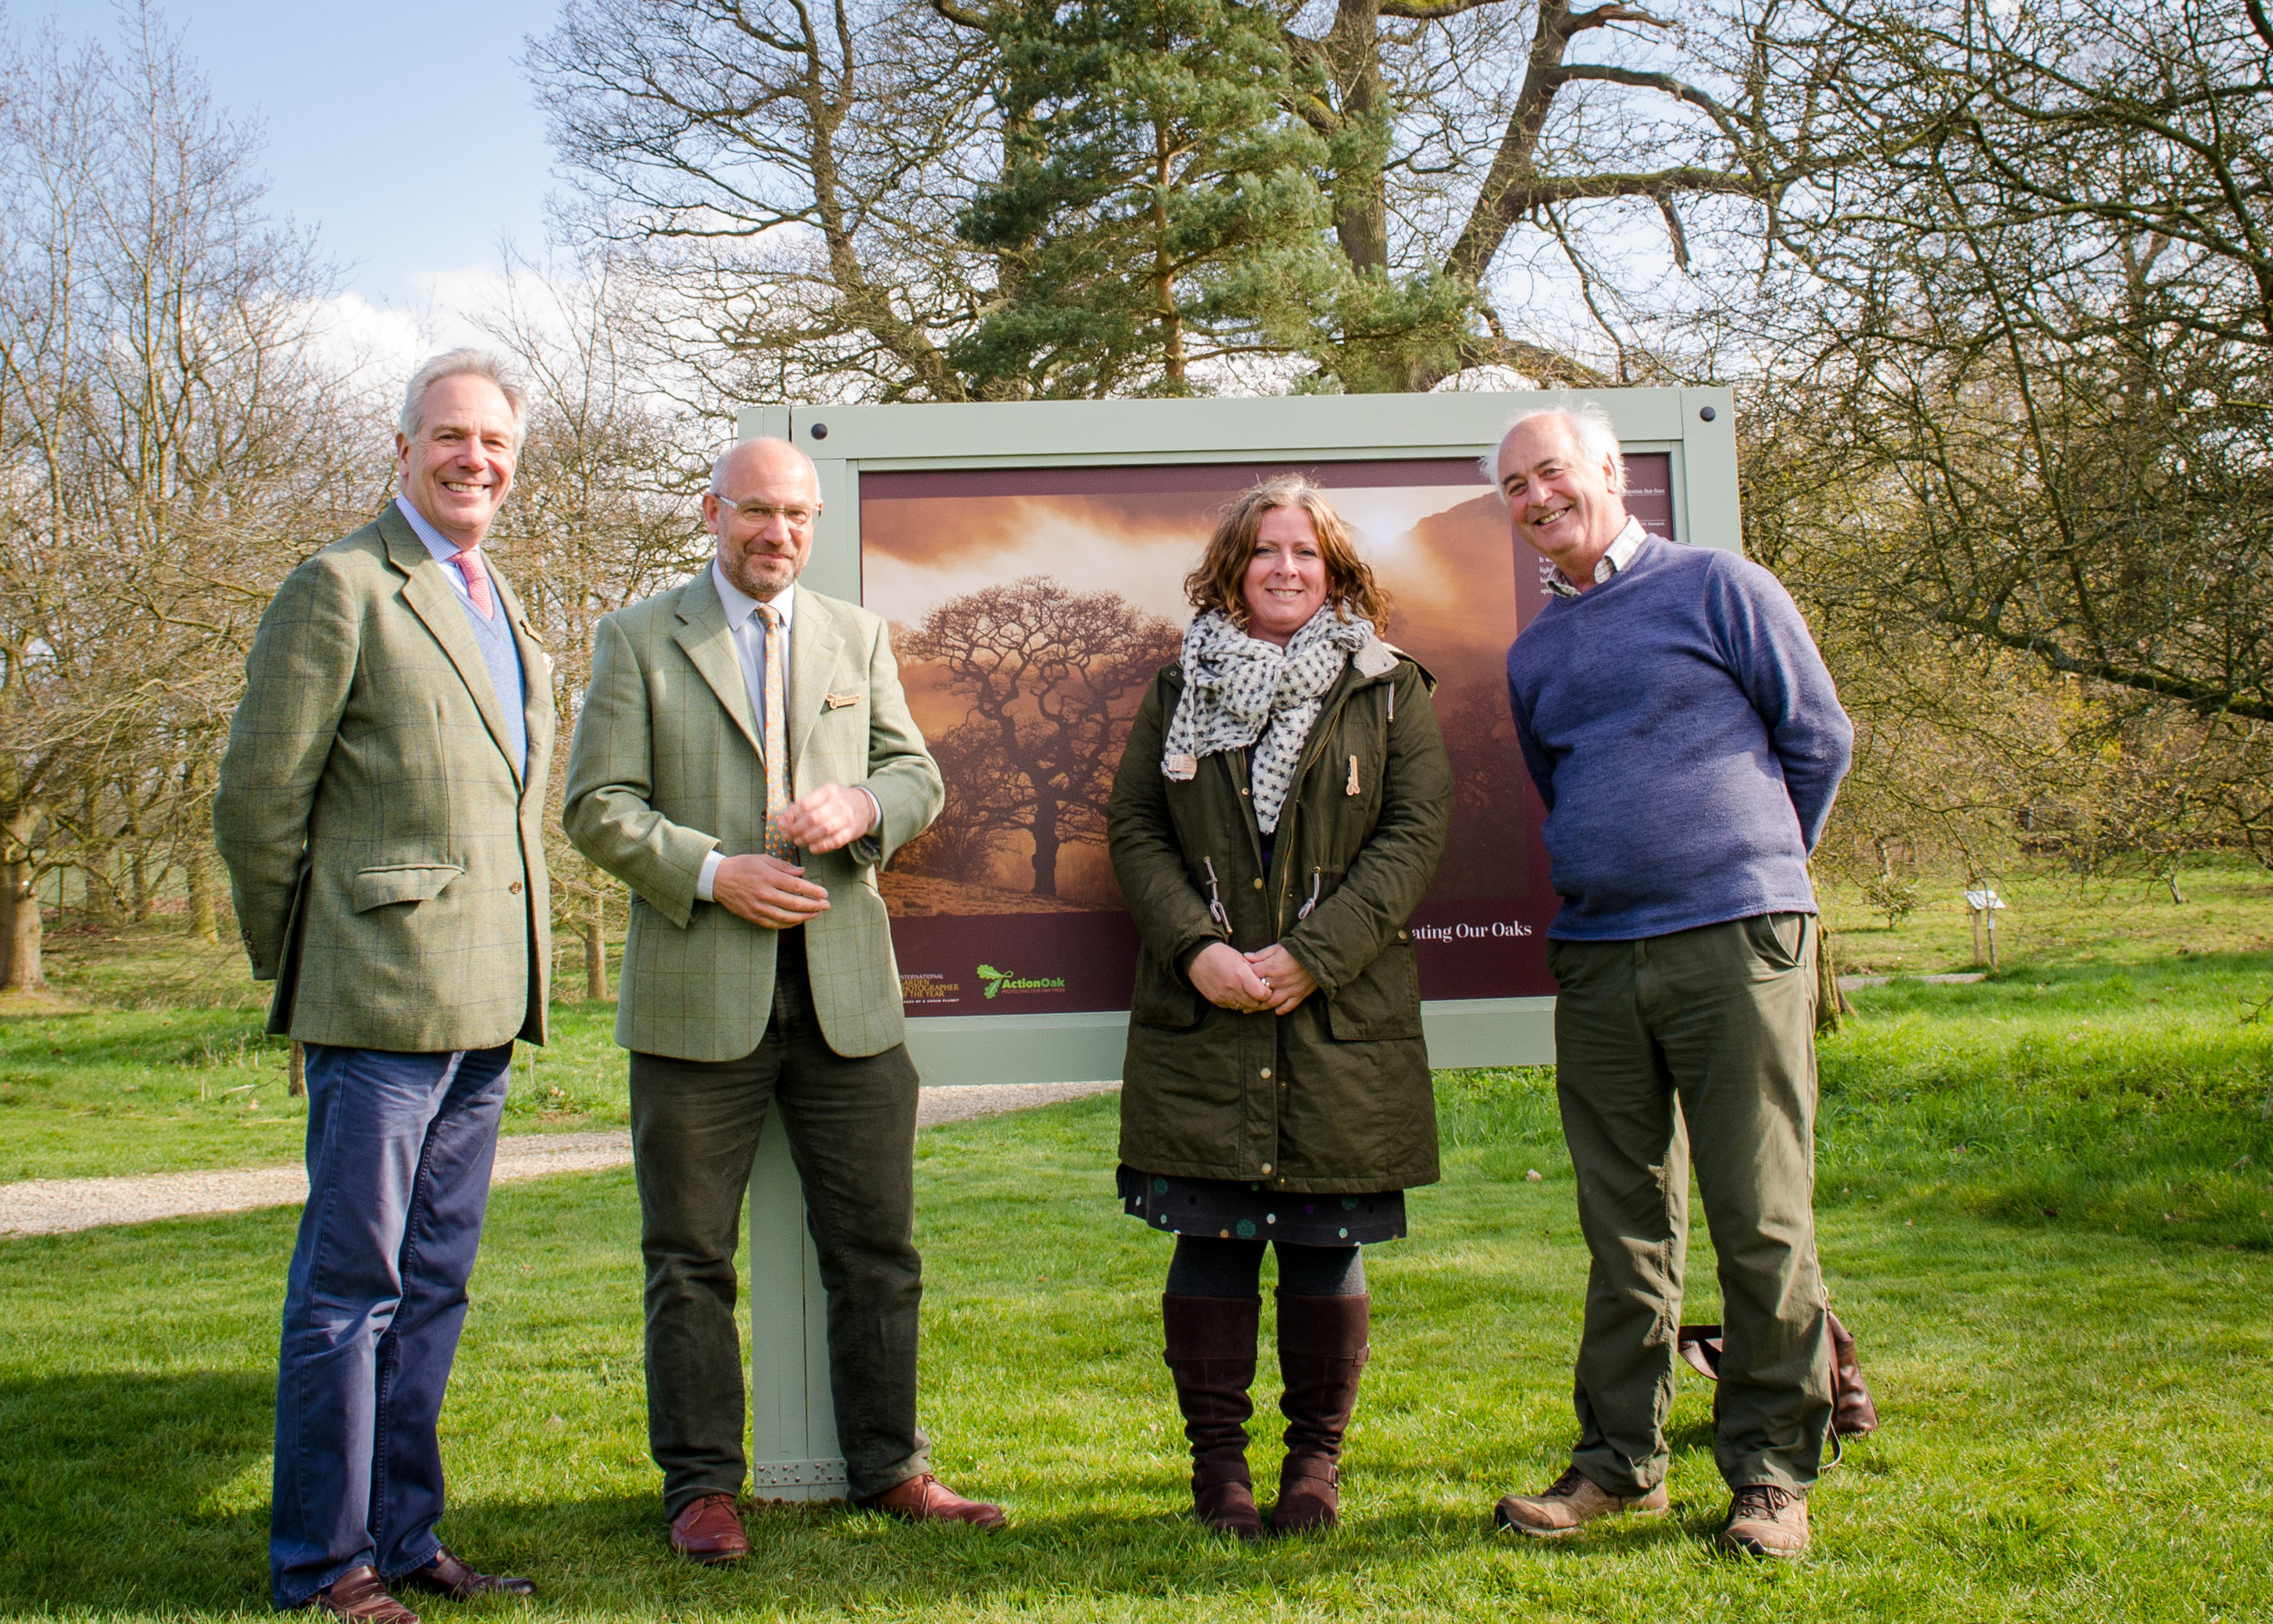 National Tree Champion Sir William Worsley Opens 'Celebrating our Oaks' Exhibition at the Yorkshire Arboretum